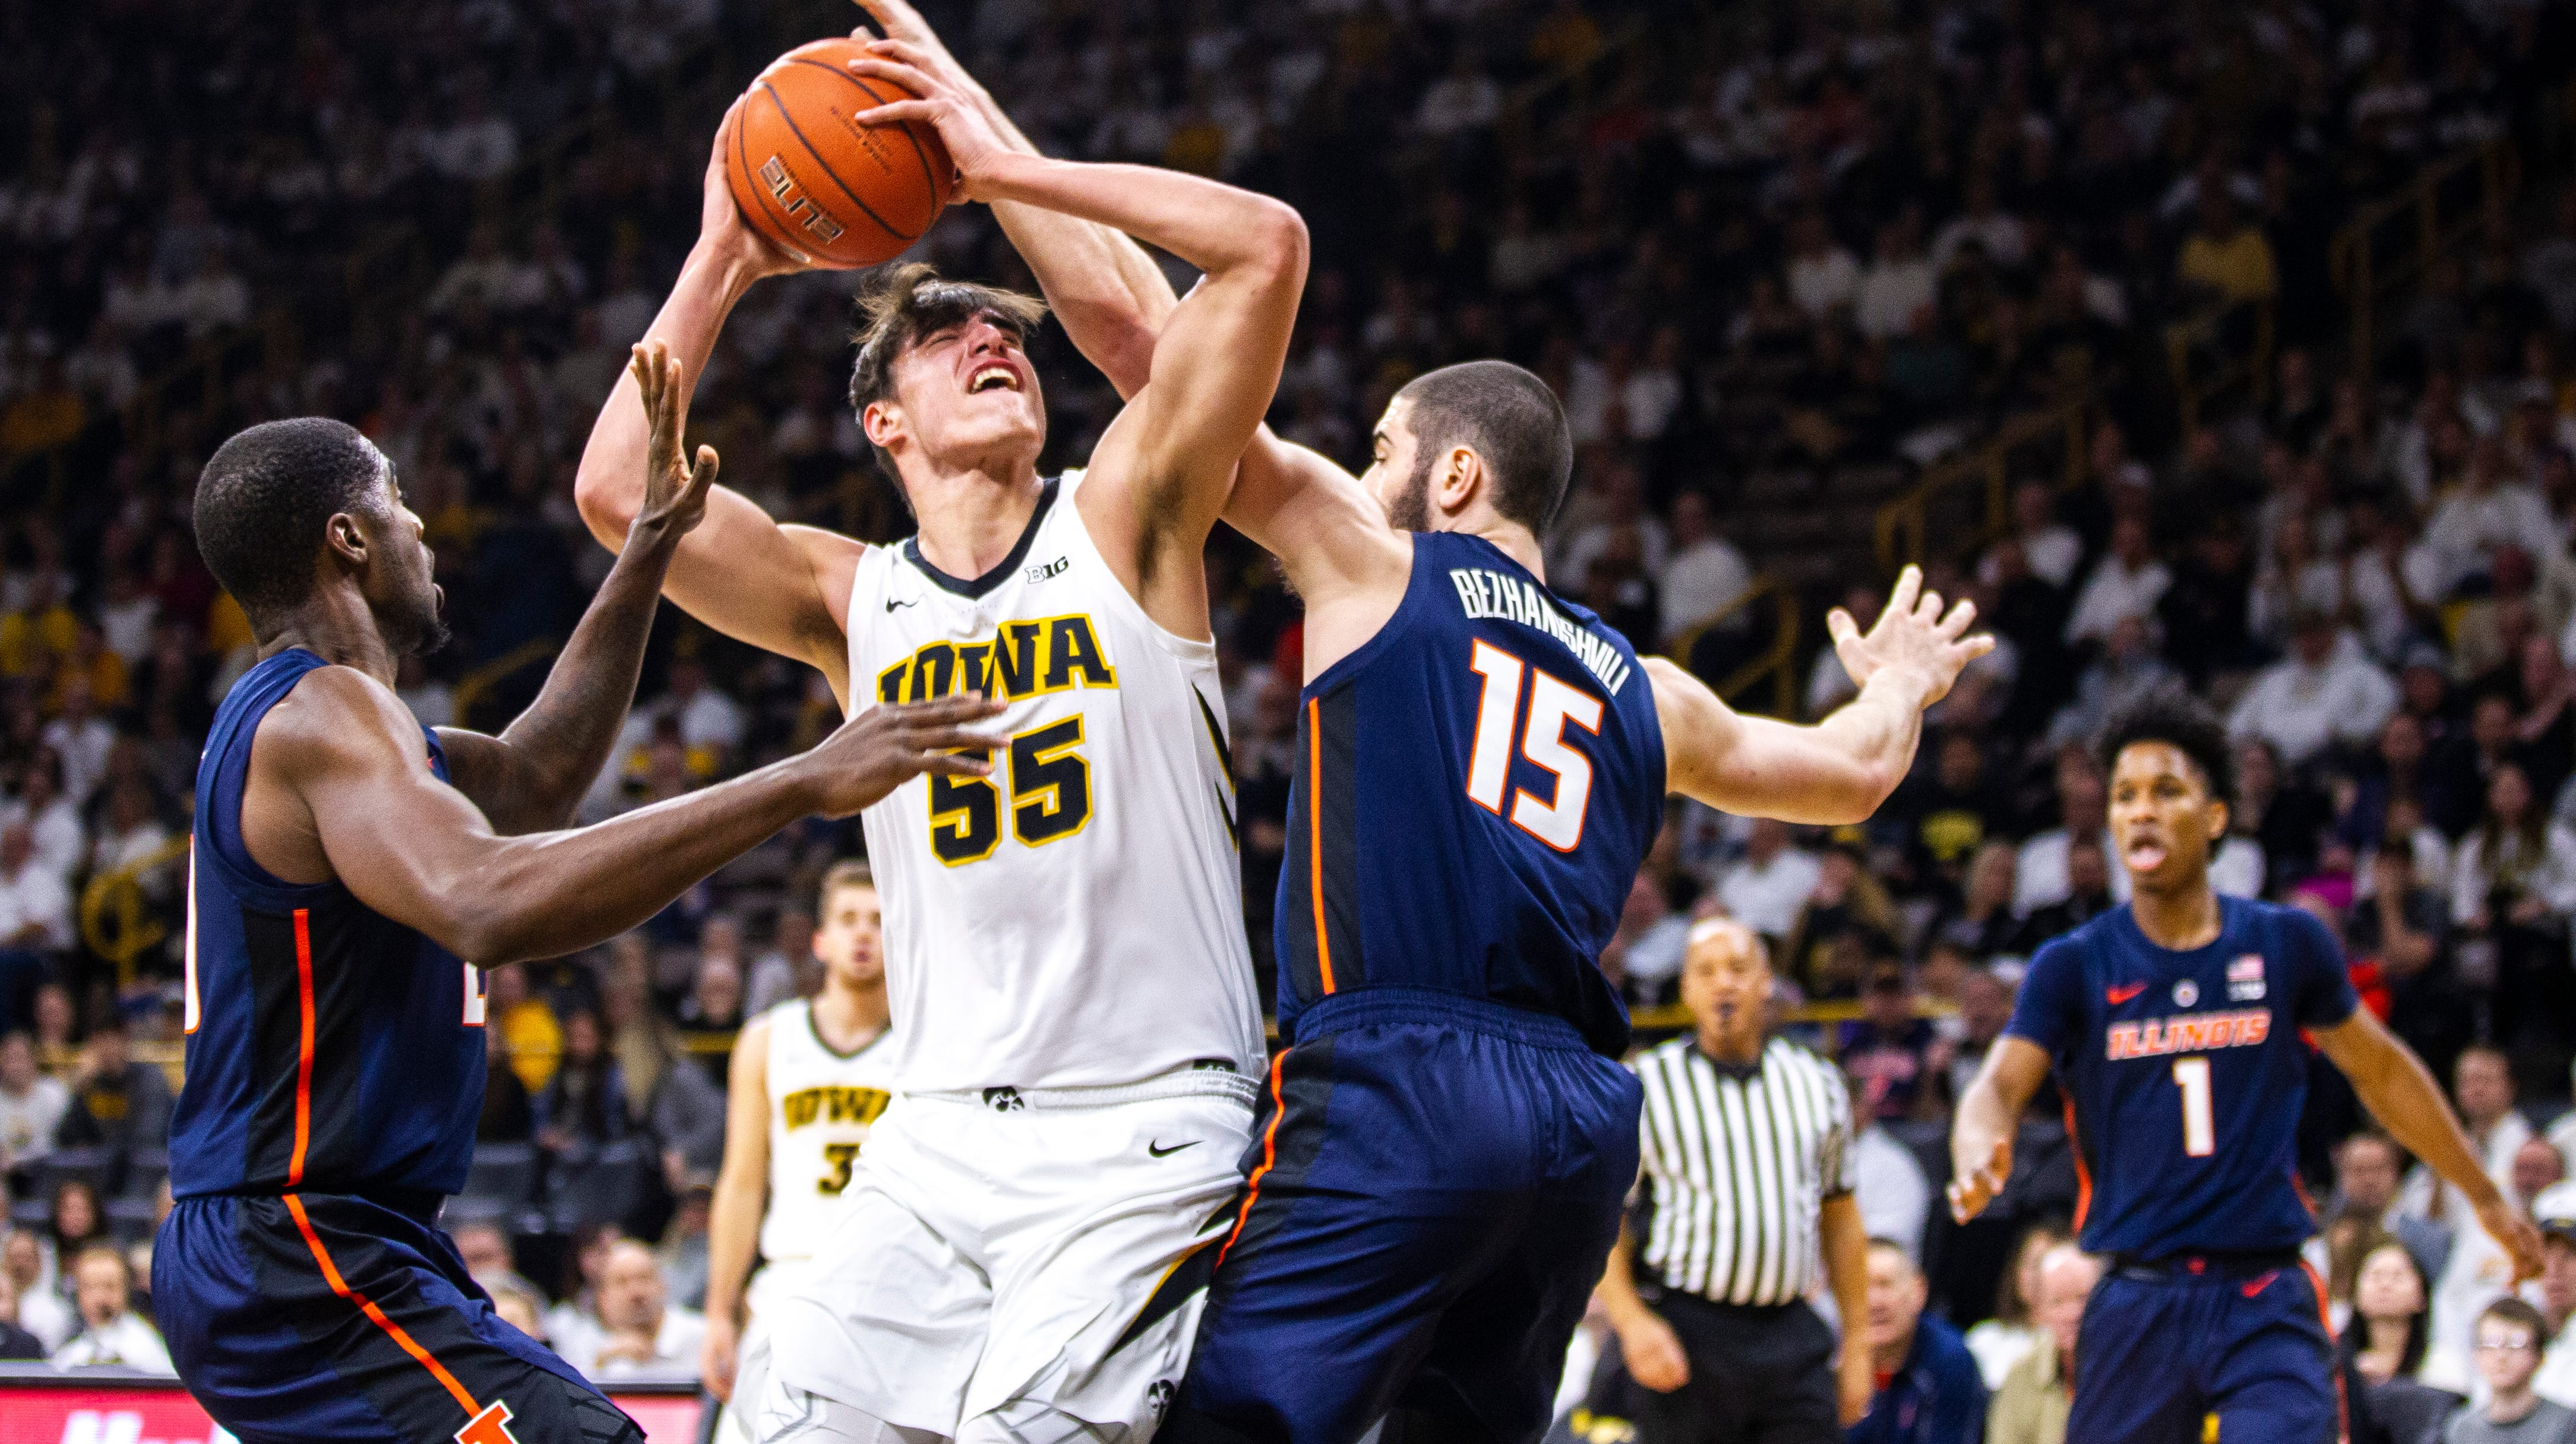 Iowa Hawkeyes men's basketball vs. Illinois Fighting Illini